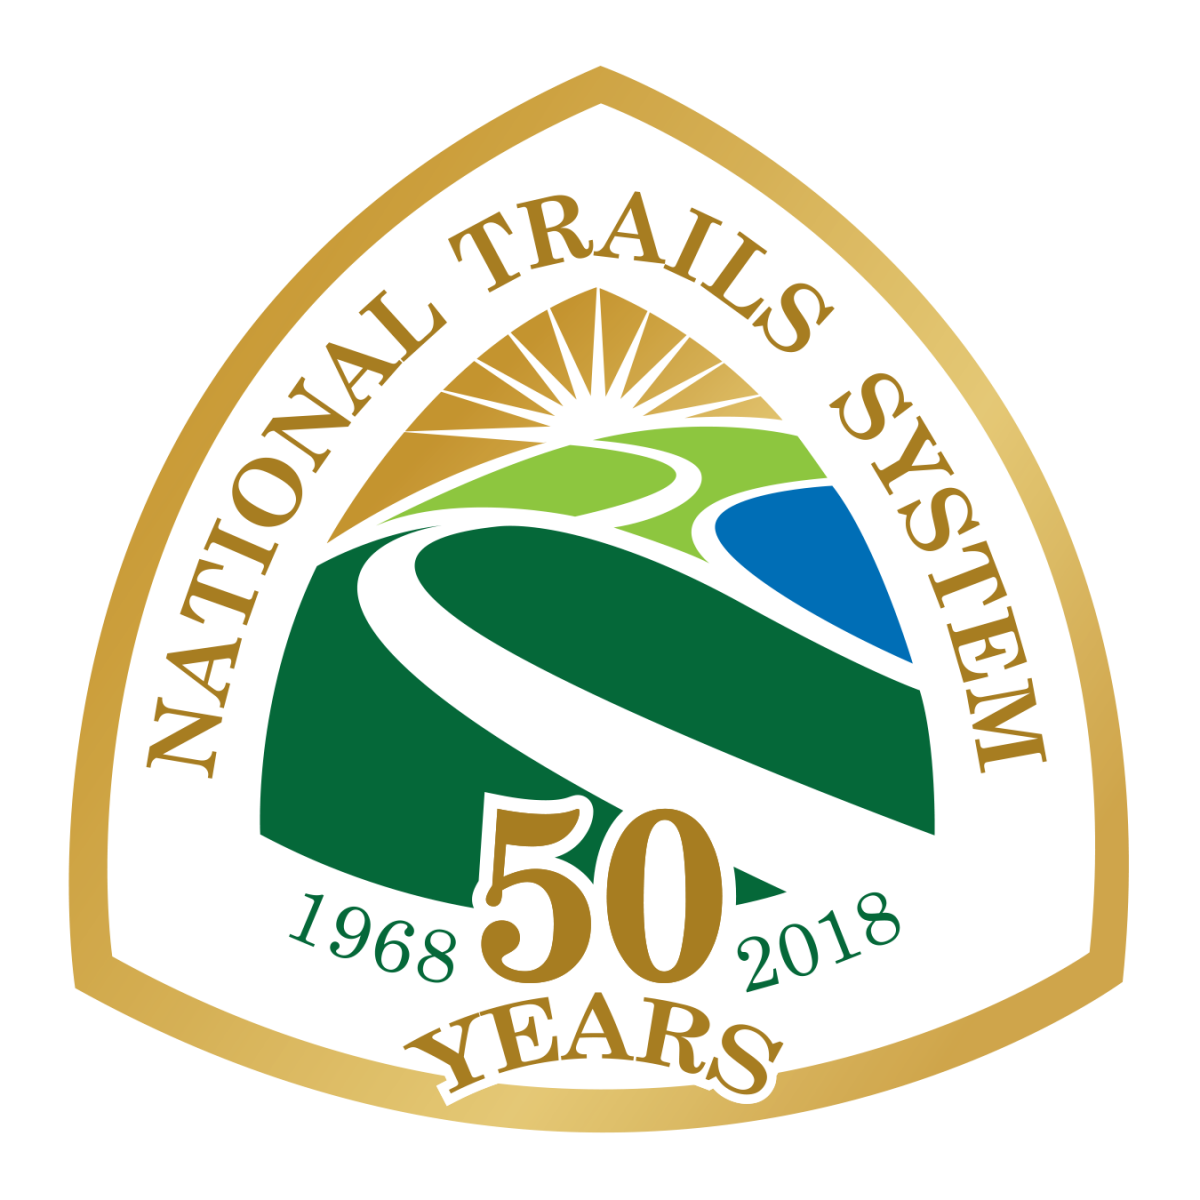 The National Trail System 50th Anniversary Logo